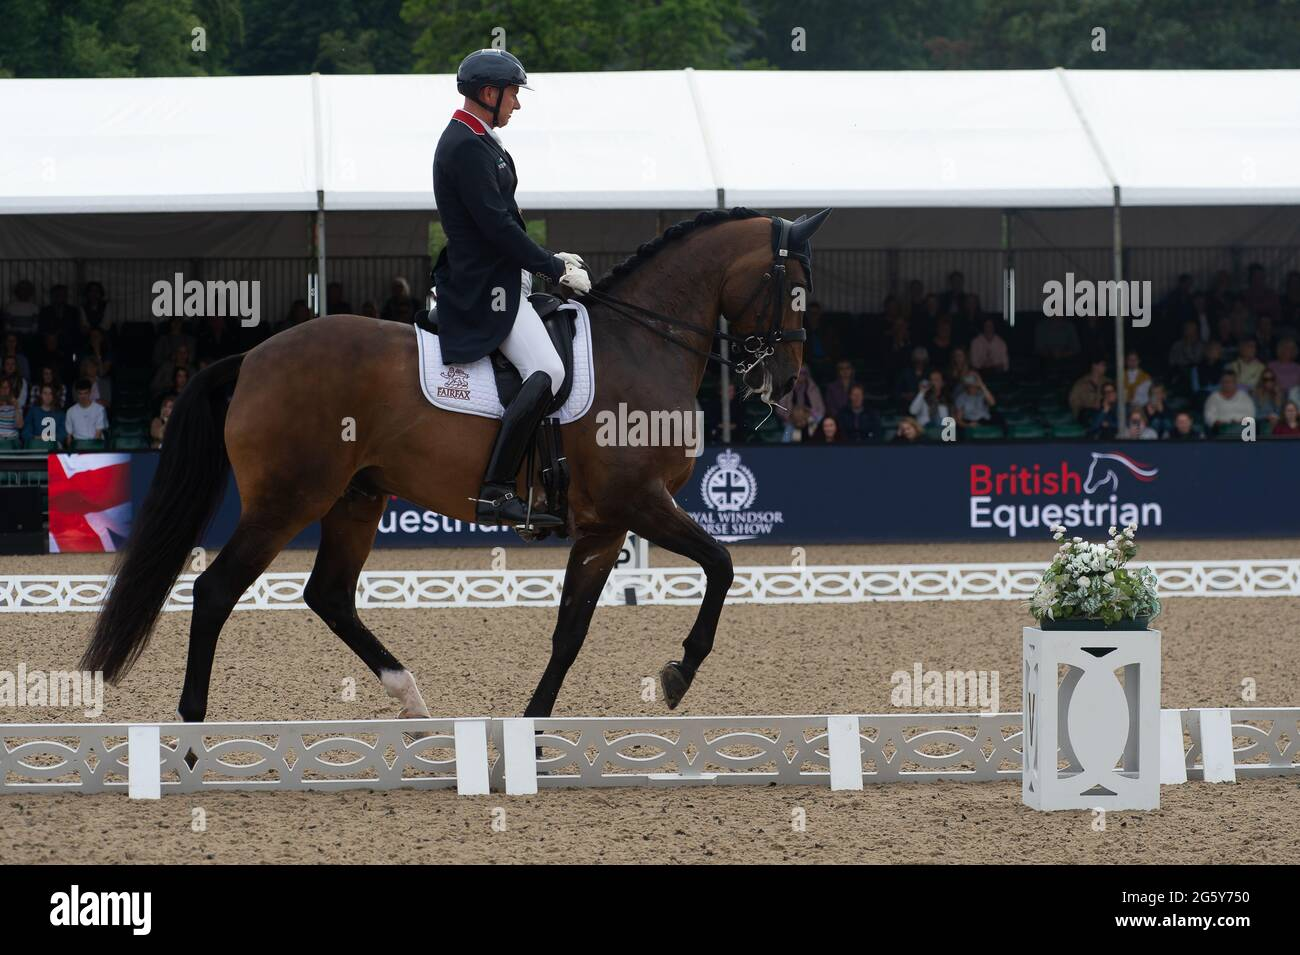 Olympia Horse Show High Resolution Stock Photography And Images Alamy